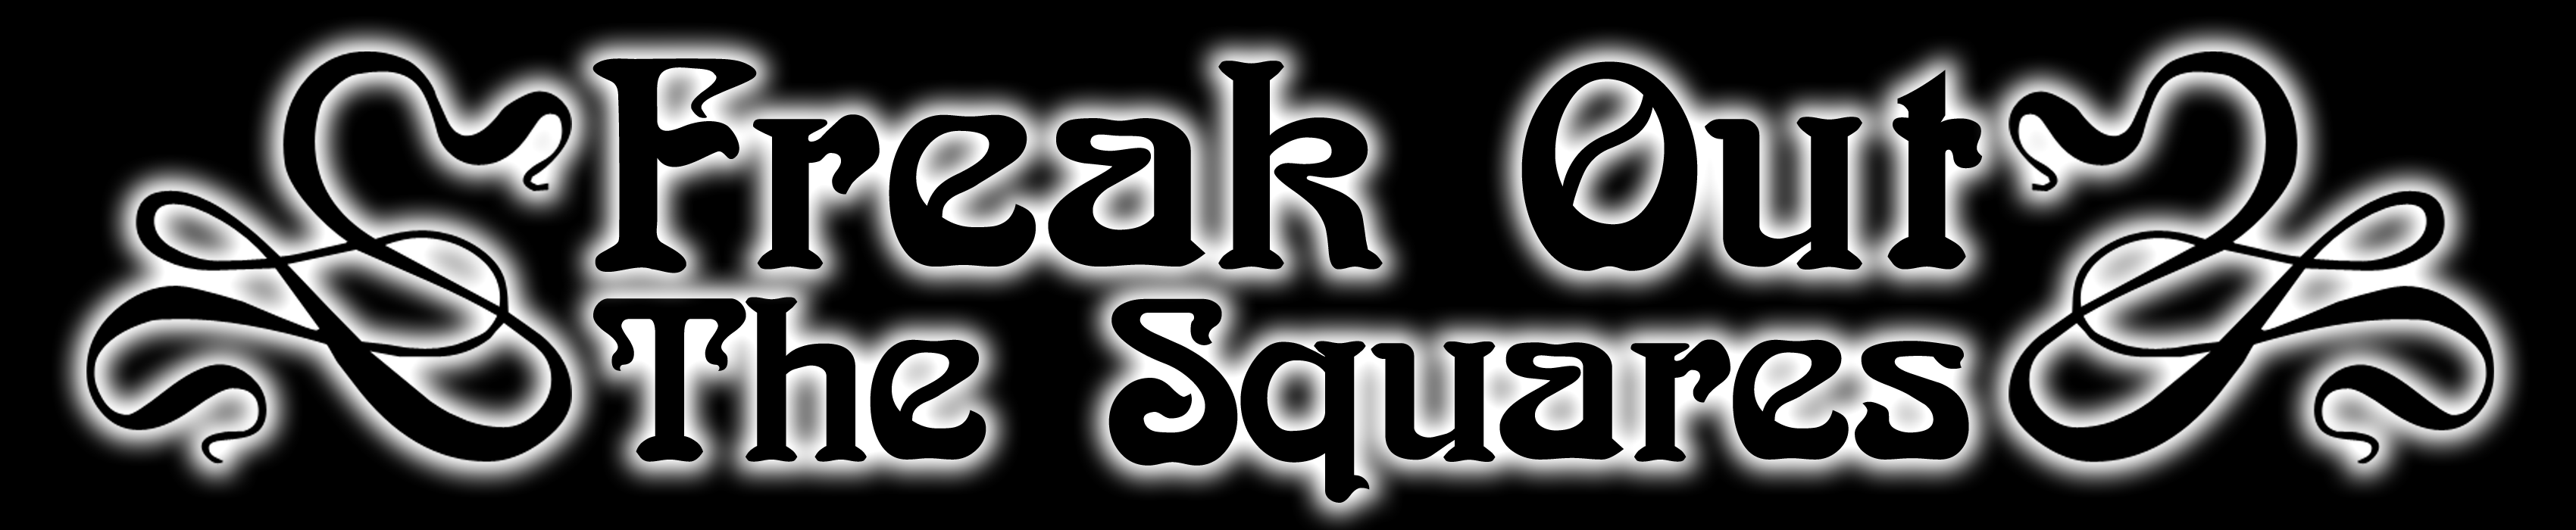 Freak Out The Squares